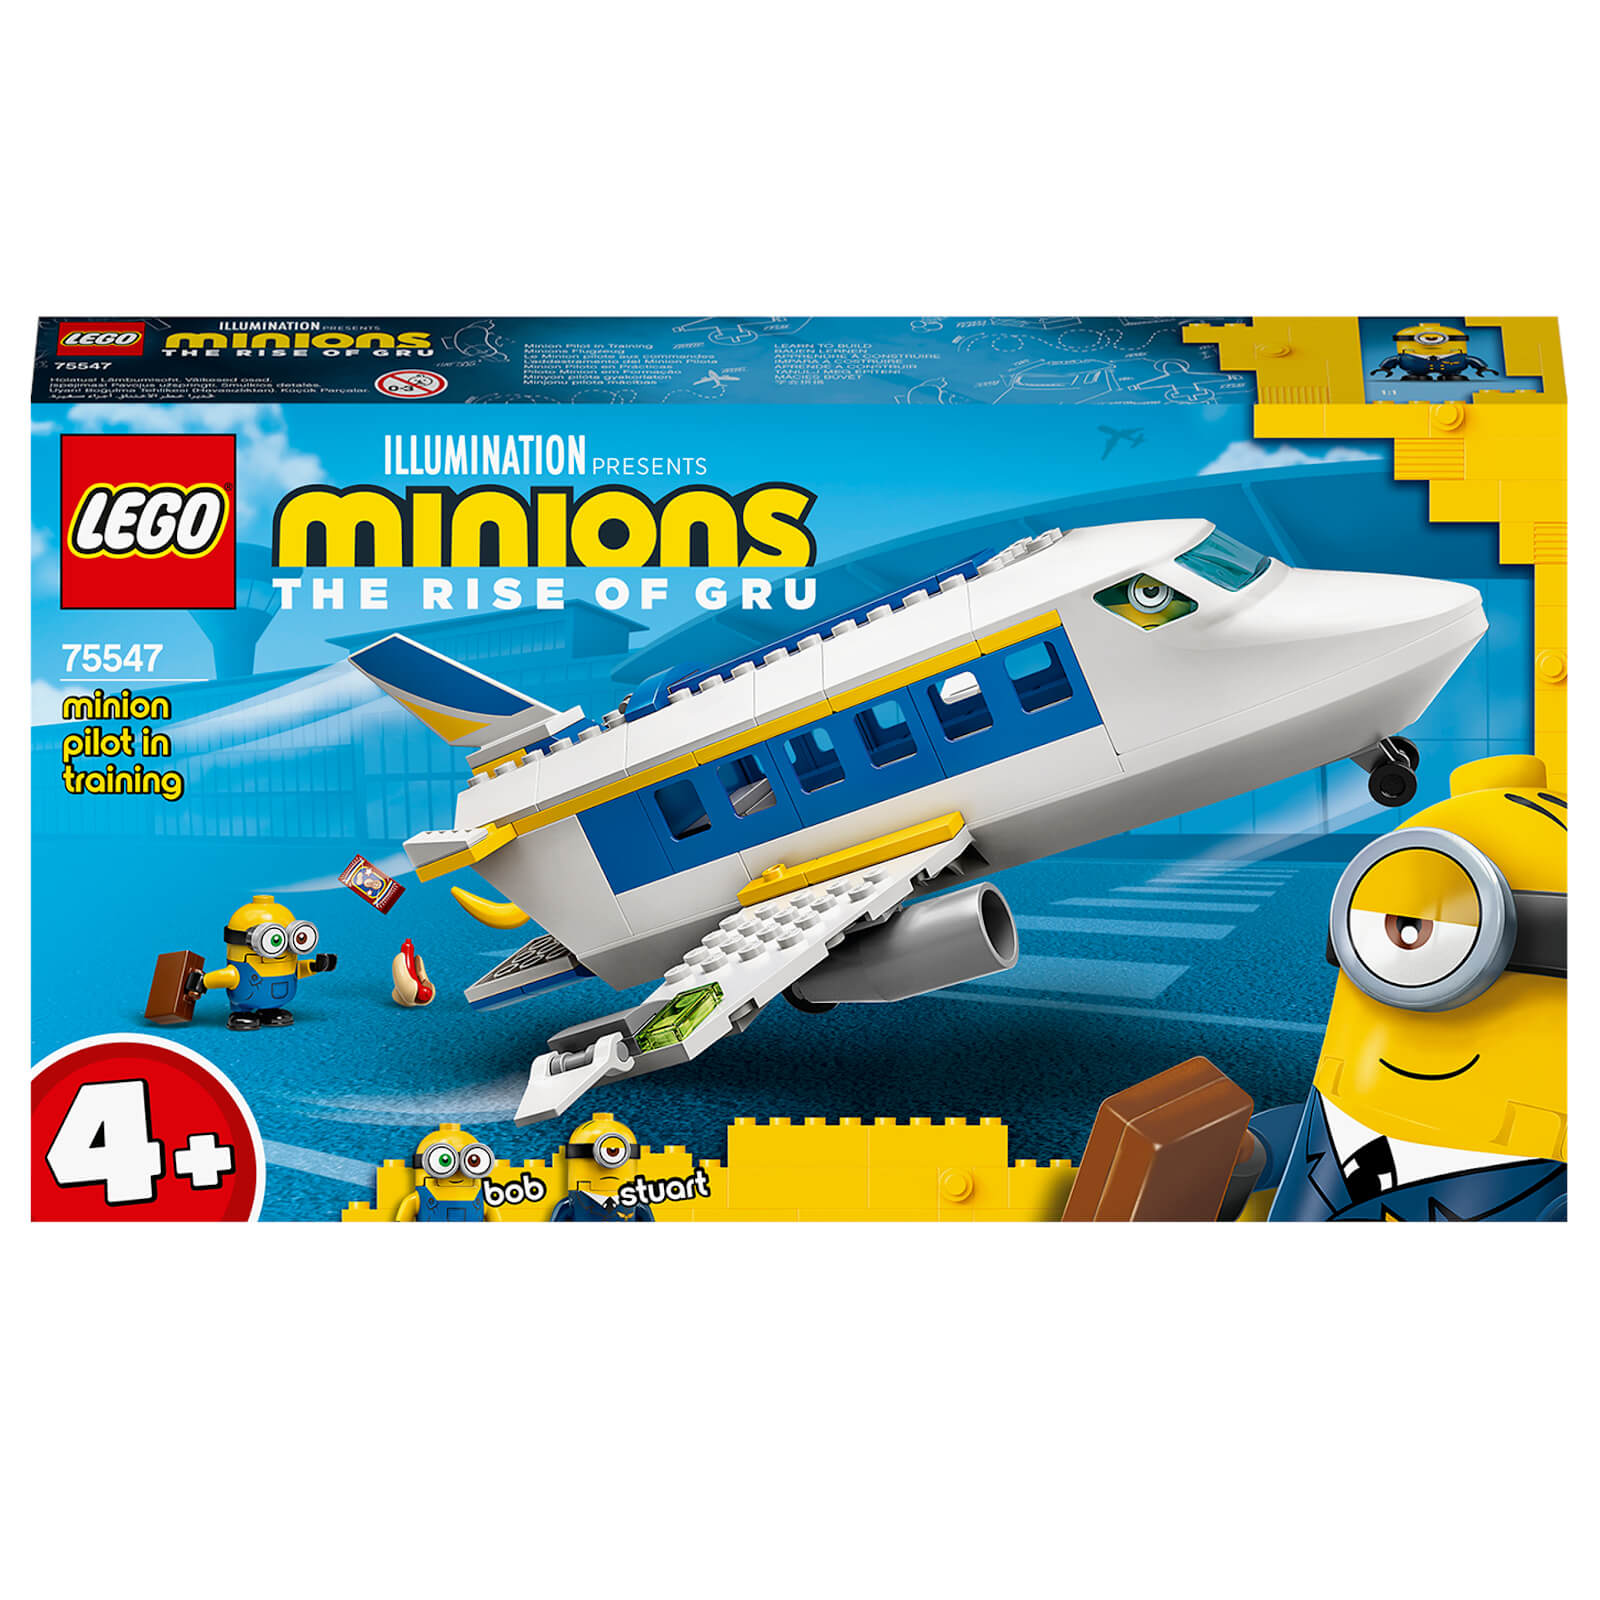 Image of LEGO 4+ Minions: Pilot in Training Plane Toy (75547)